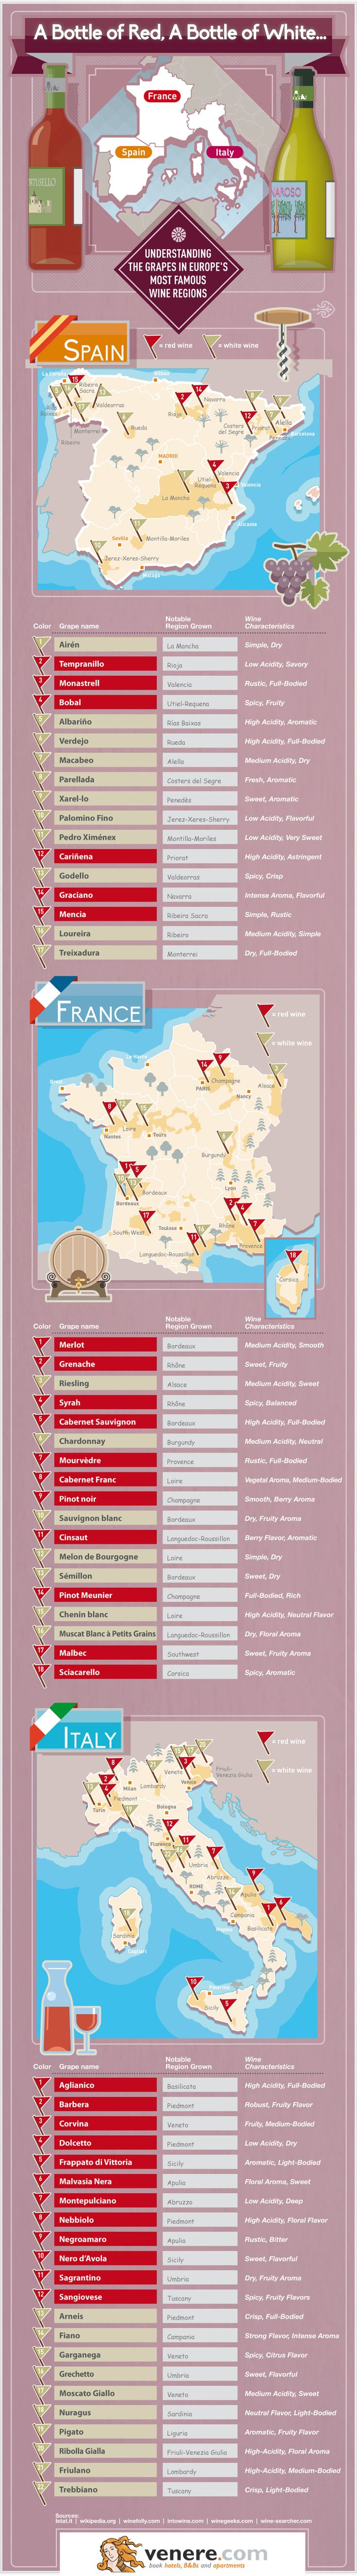 The Map of European Wine is Here! Check Out How Diverse and Rich Can Wine Production in Southern Europe Be!